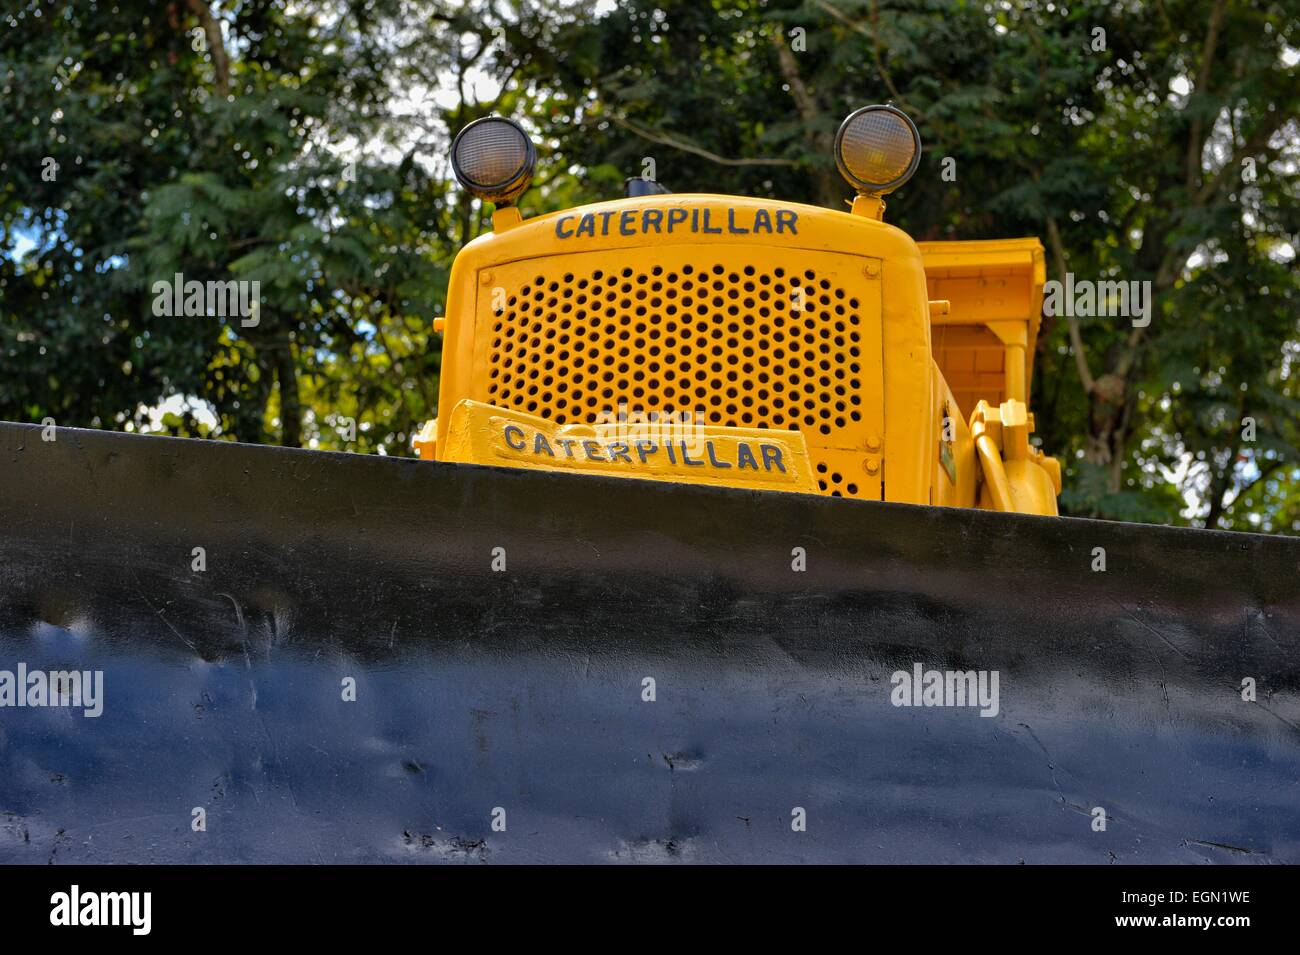 Caterpillar bulldozer from the Cuban Revolution, where the train and carriages were attacked and derailed, Santa - Stock Image